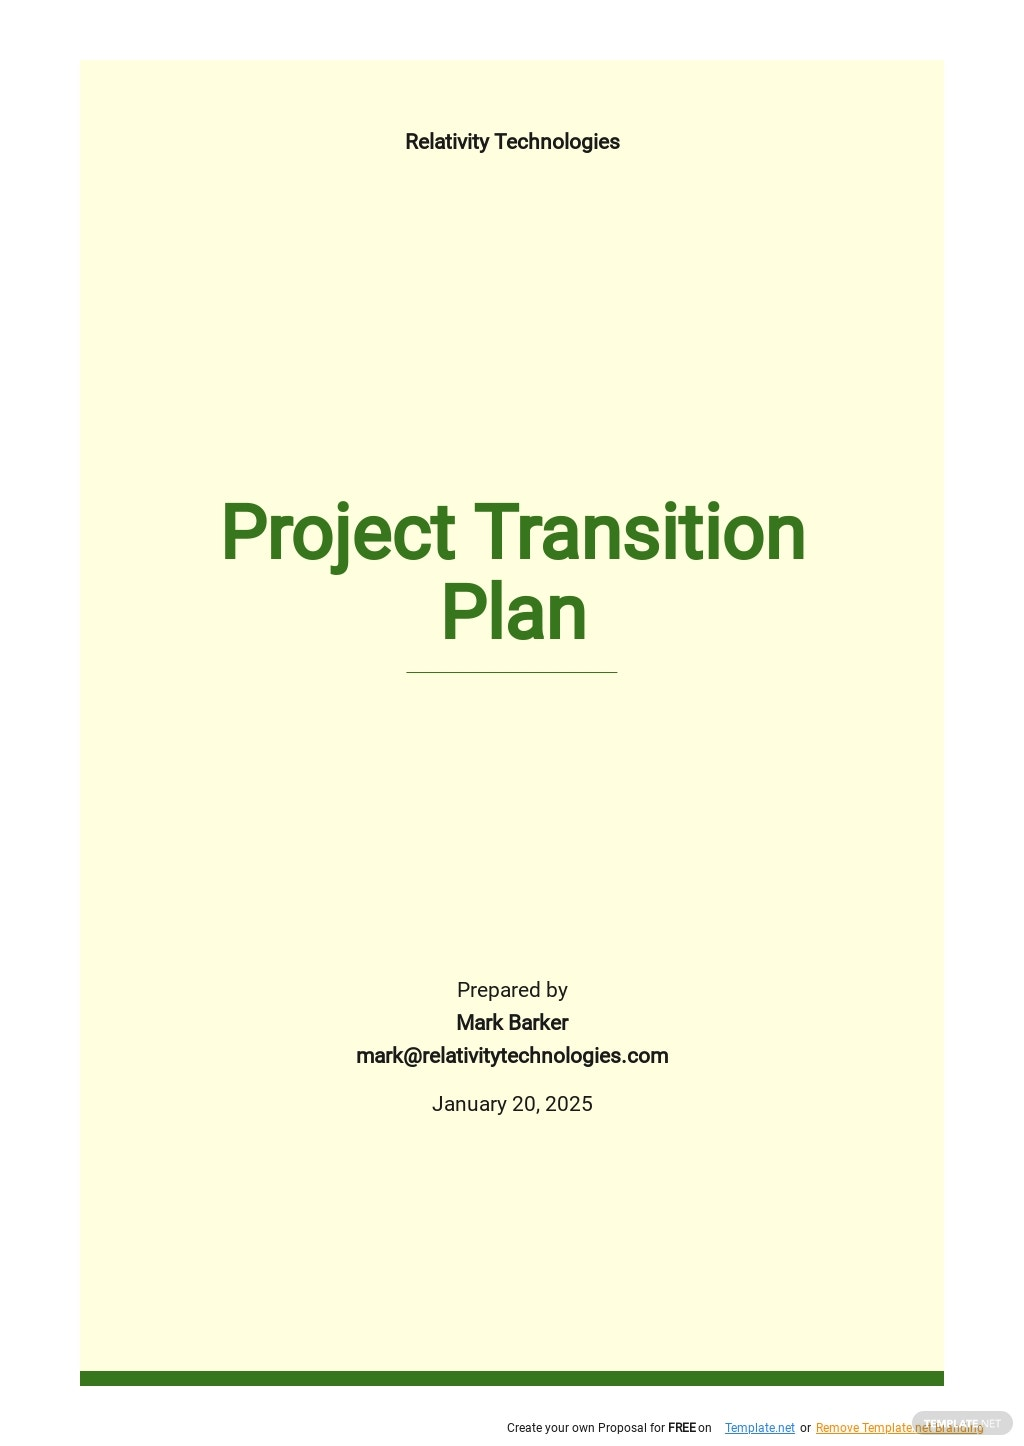 FREE Project Management Plan Templates in PDF   Template.net